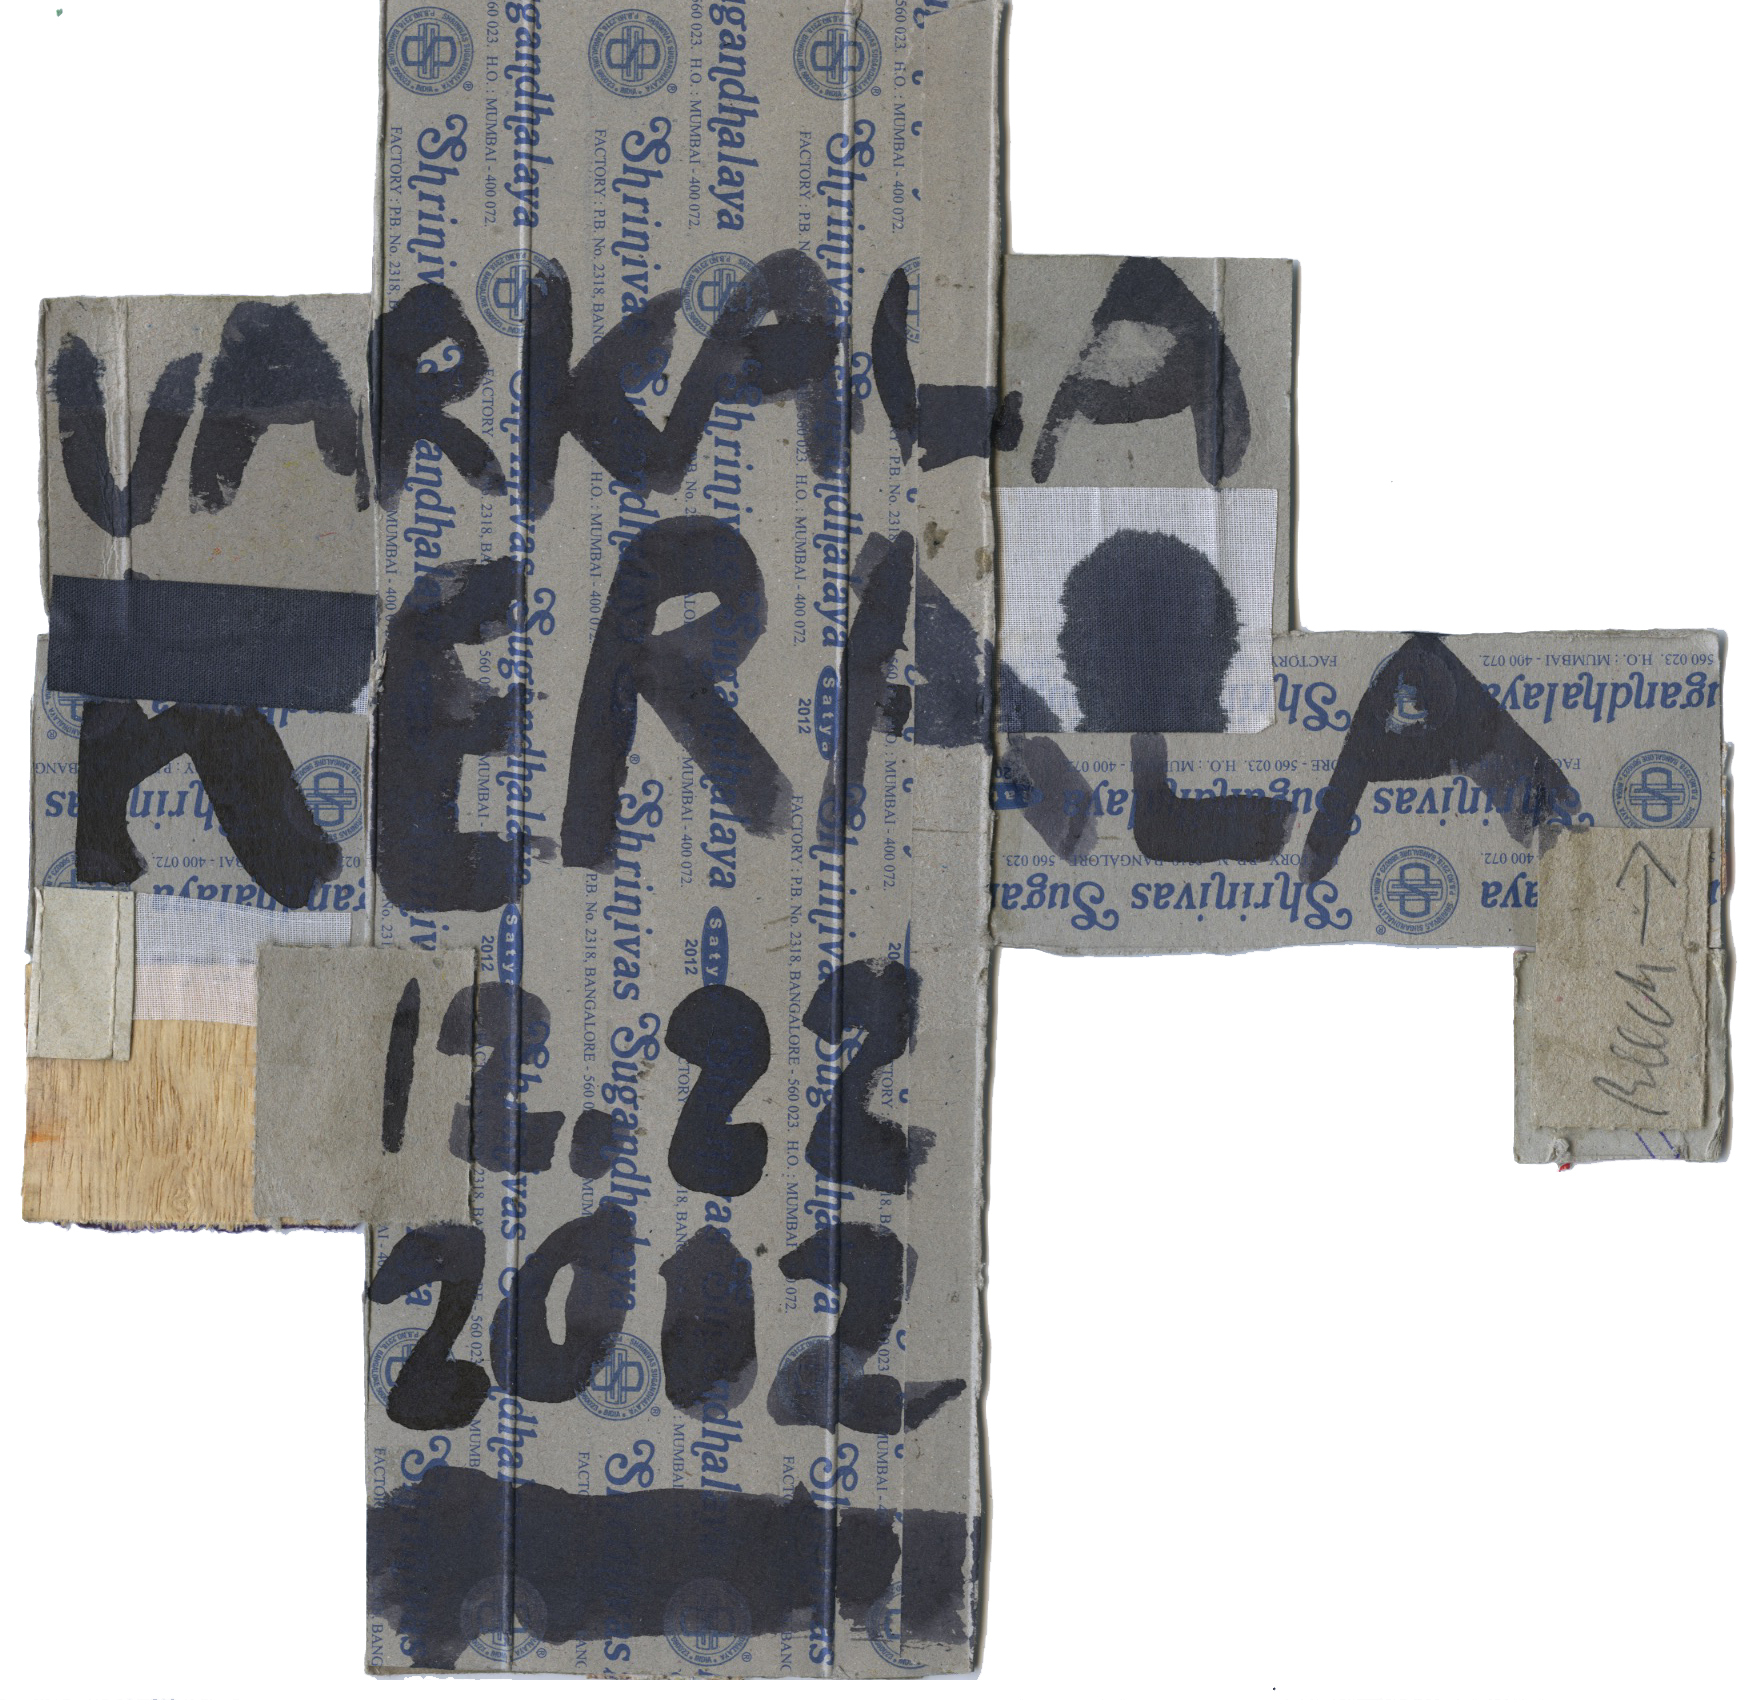 India Drawing Varkala 2012 8.5 x 8.5 inches